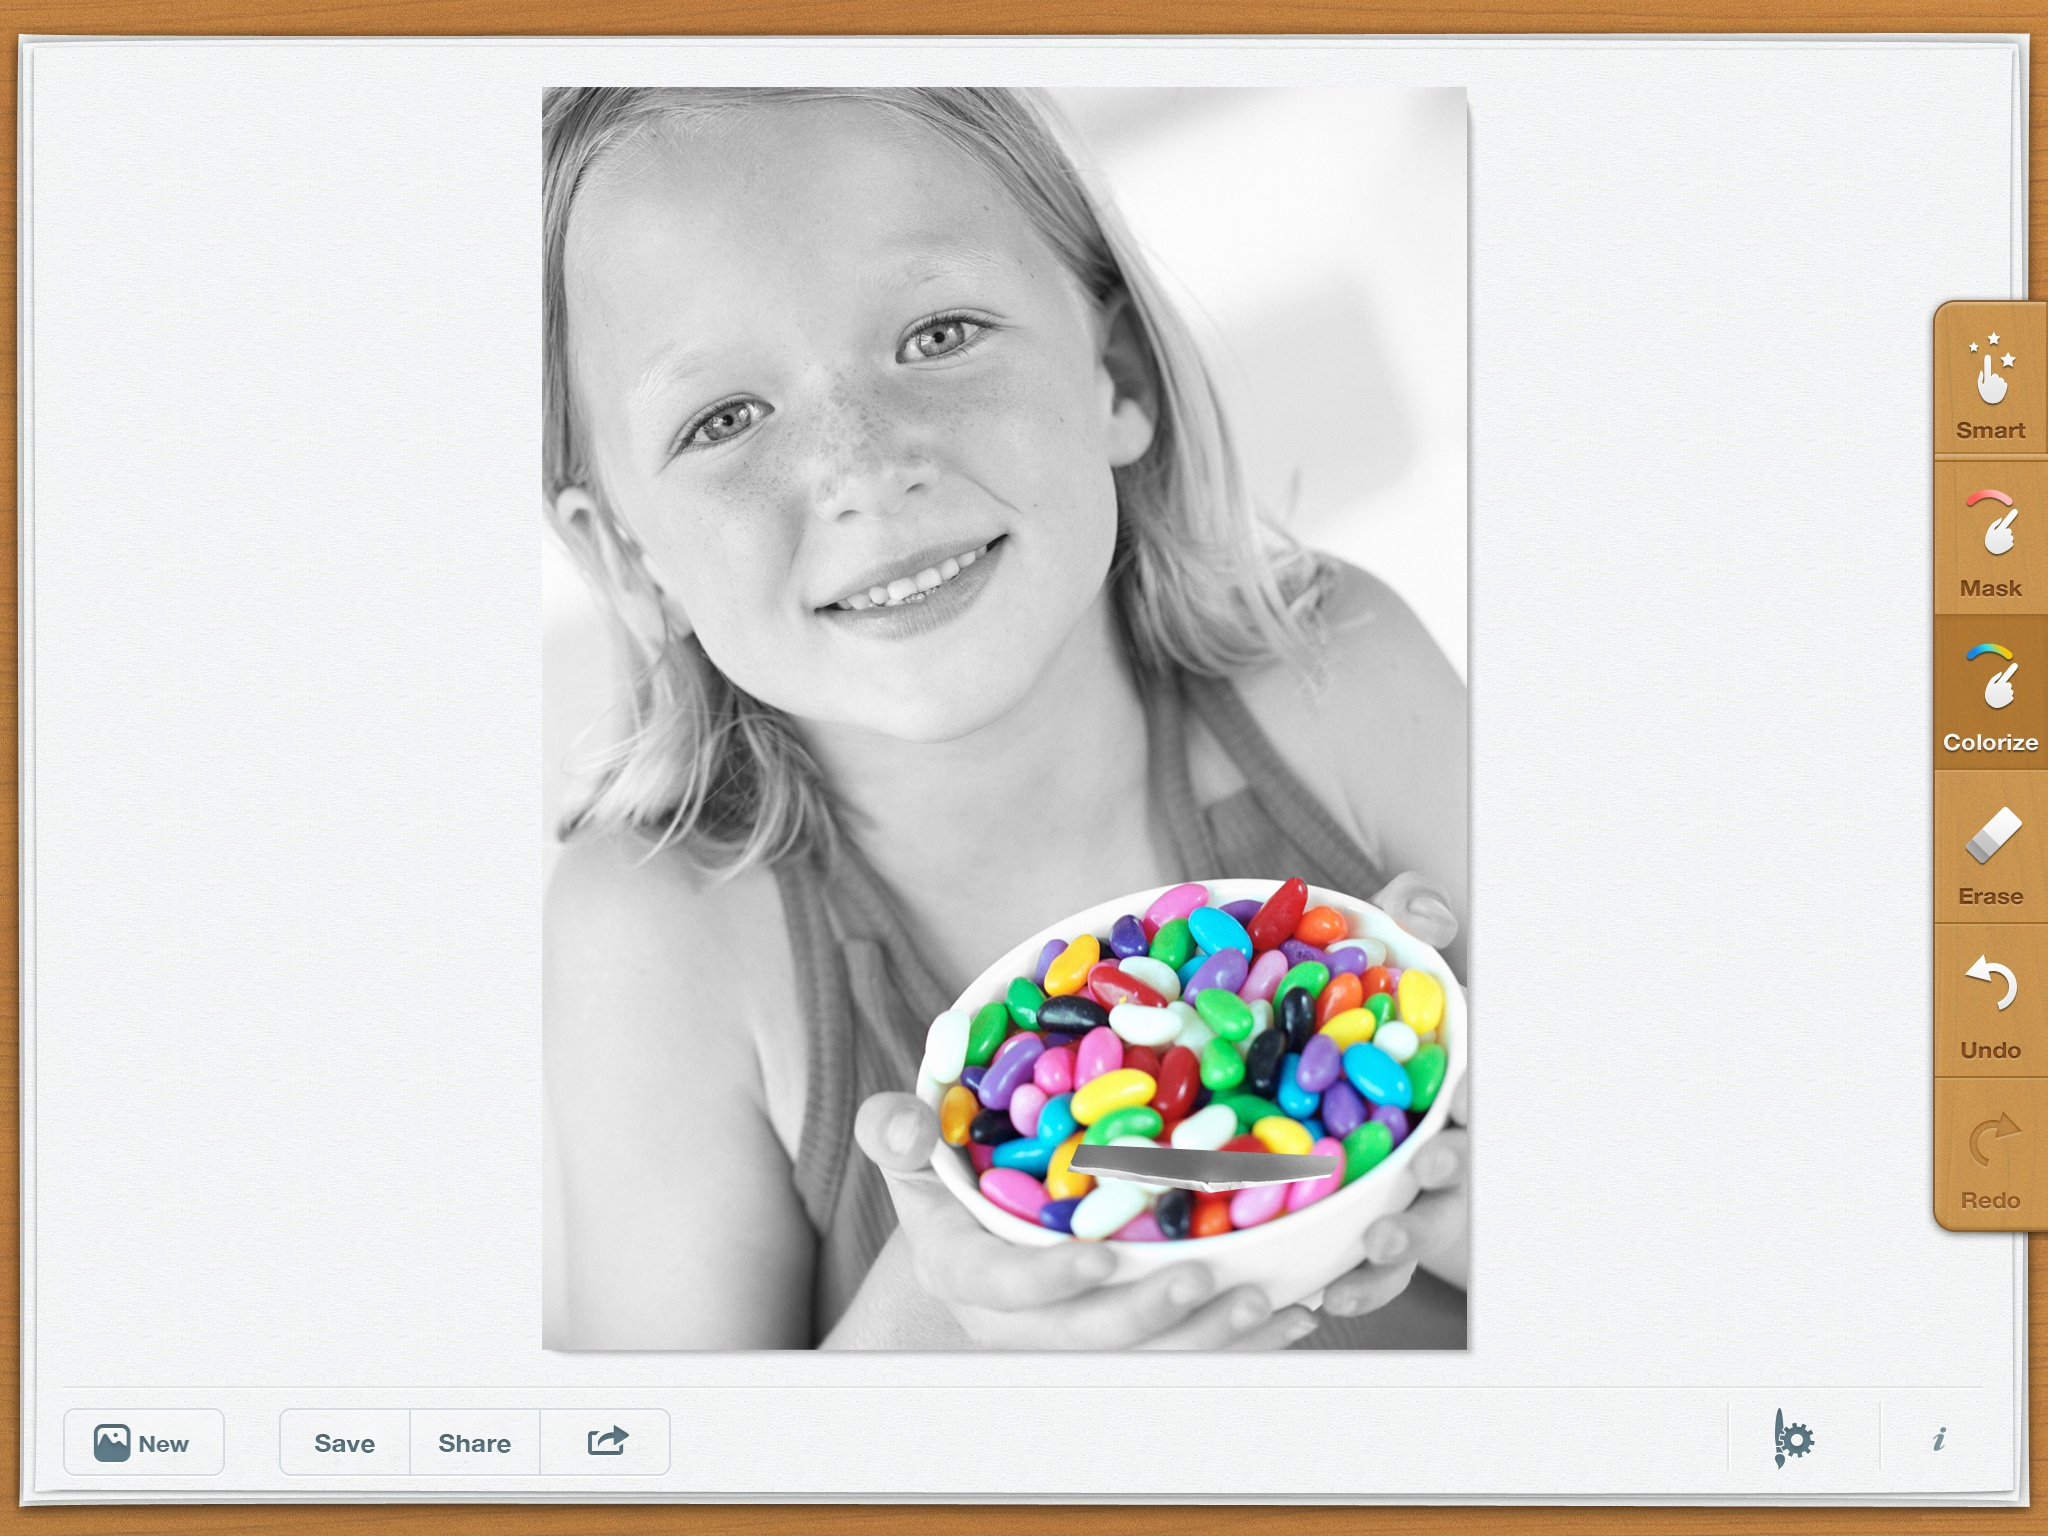 Colorize Your Photos The Smart And Delightful Way With Photo Delight 2.0